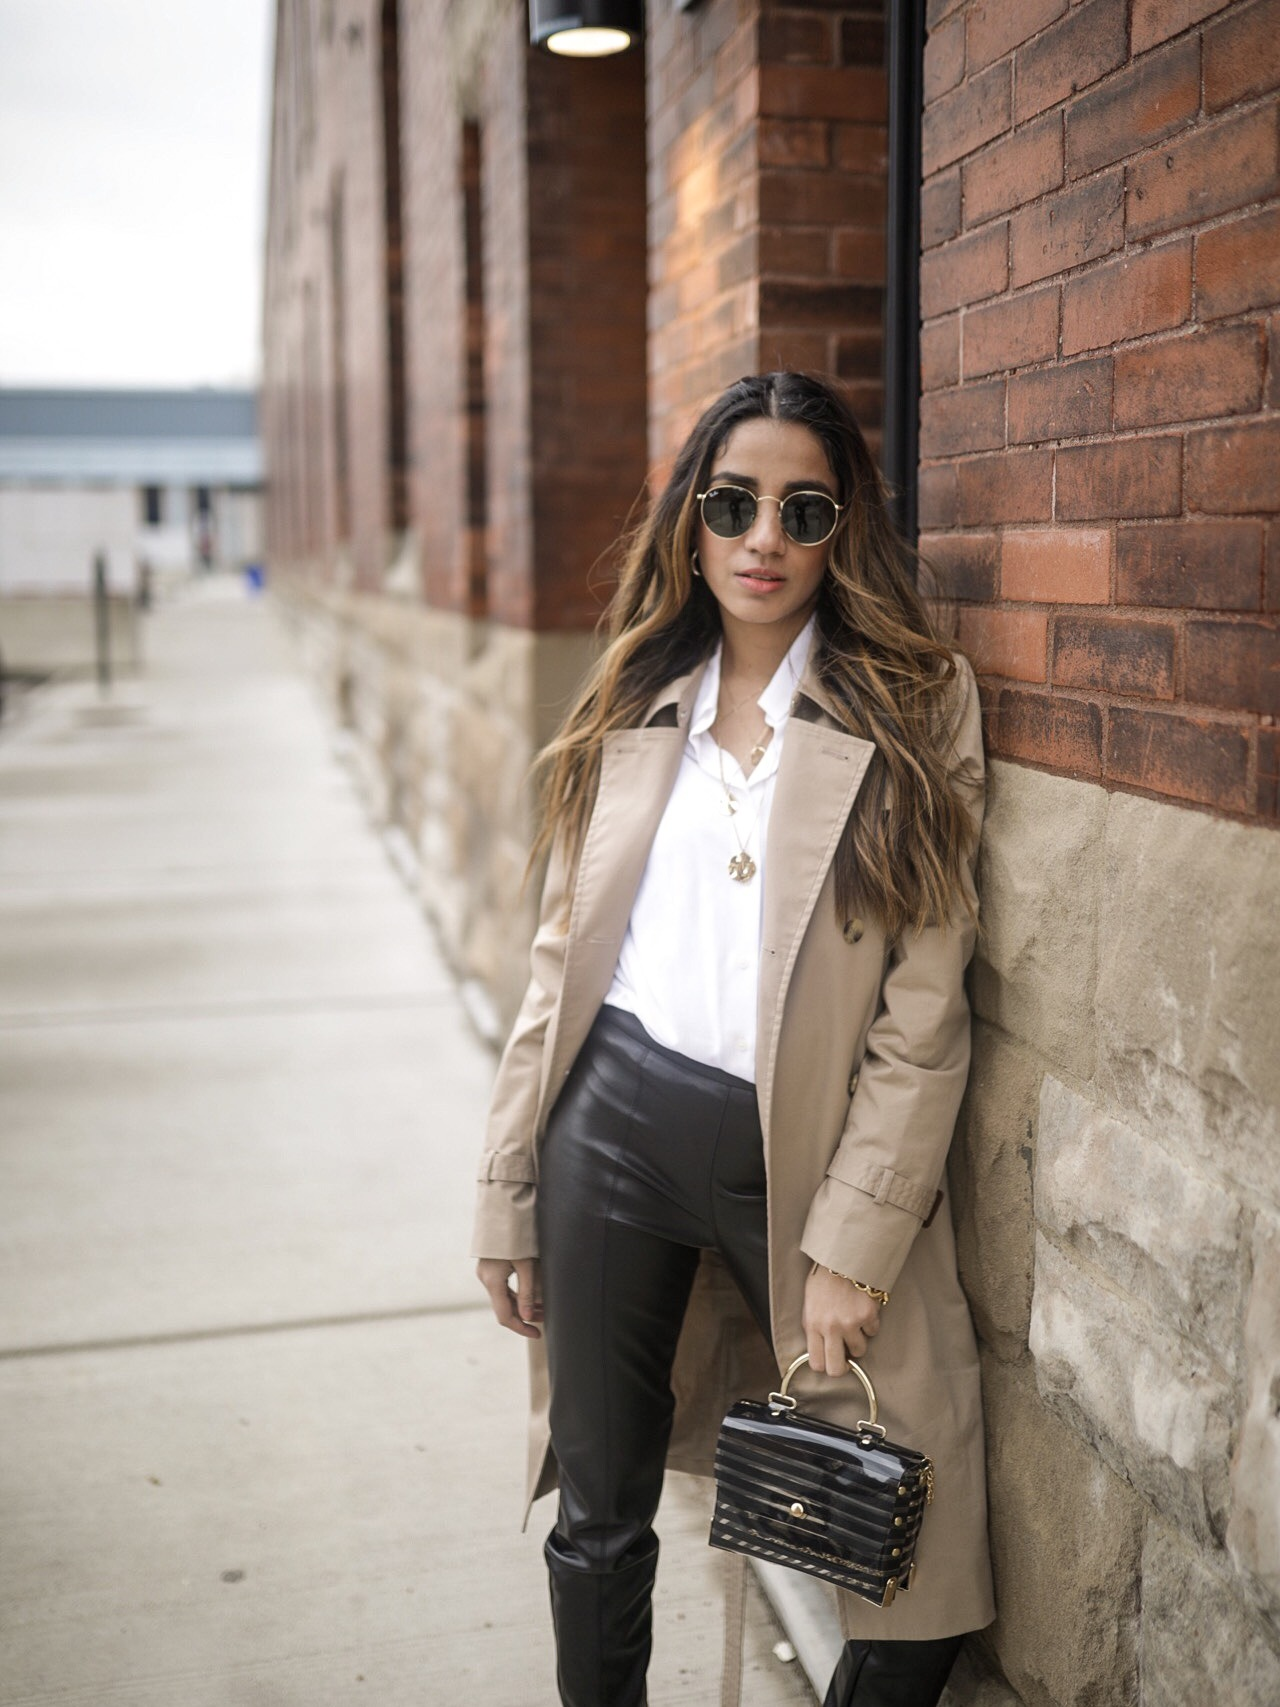 The Trendiest Winter Staples You Didn't Know You Needed Faiza Inam sincerelyhumble wintet cold style staples look leather trend leather pants look faiza 5